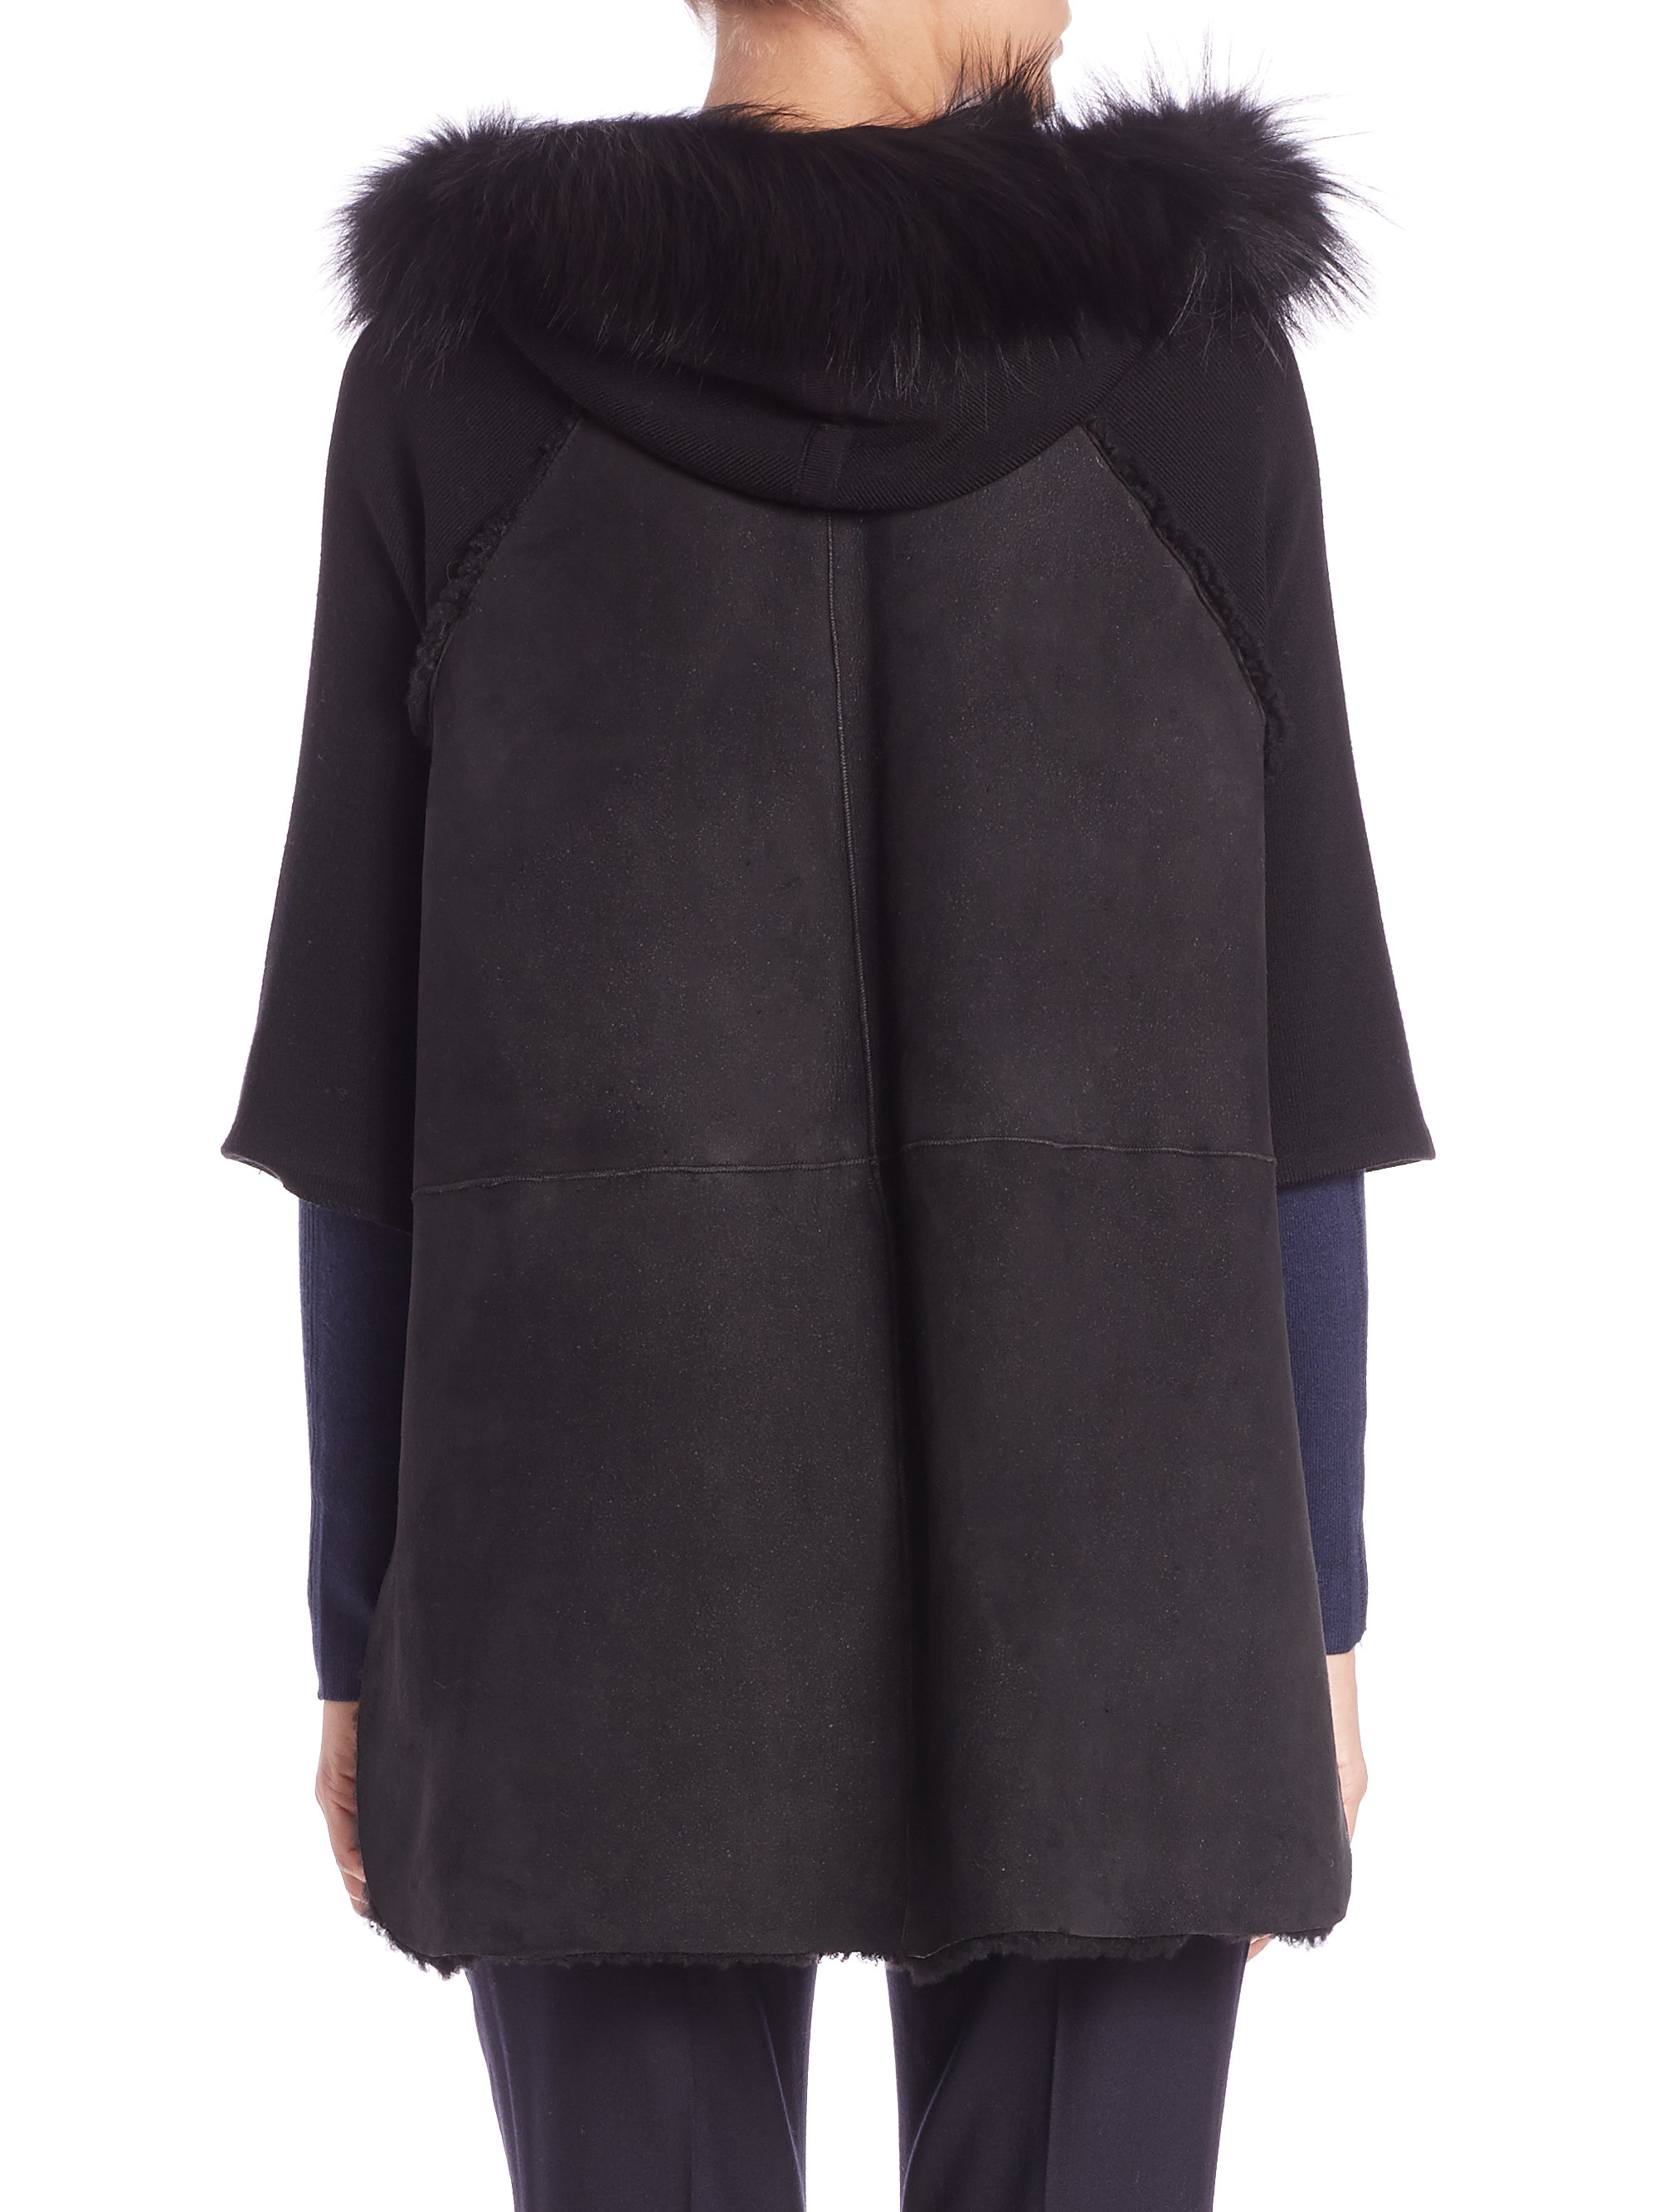 Elie tahari Joey Fur-trimmed Shearling Cape Jacket in Black | Lyst